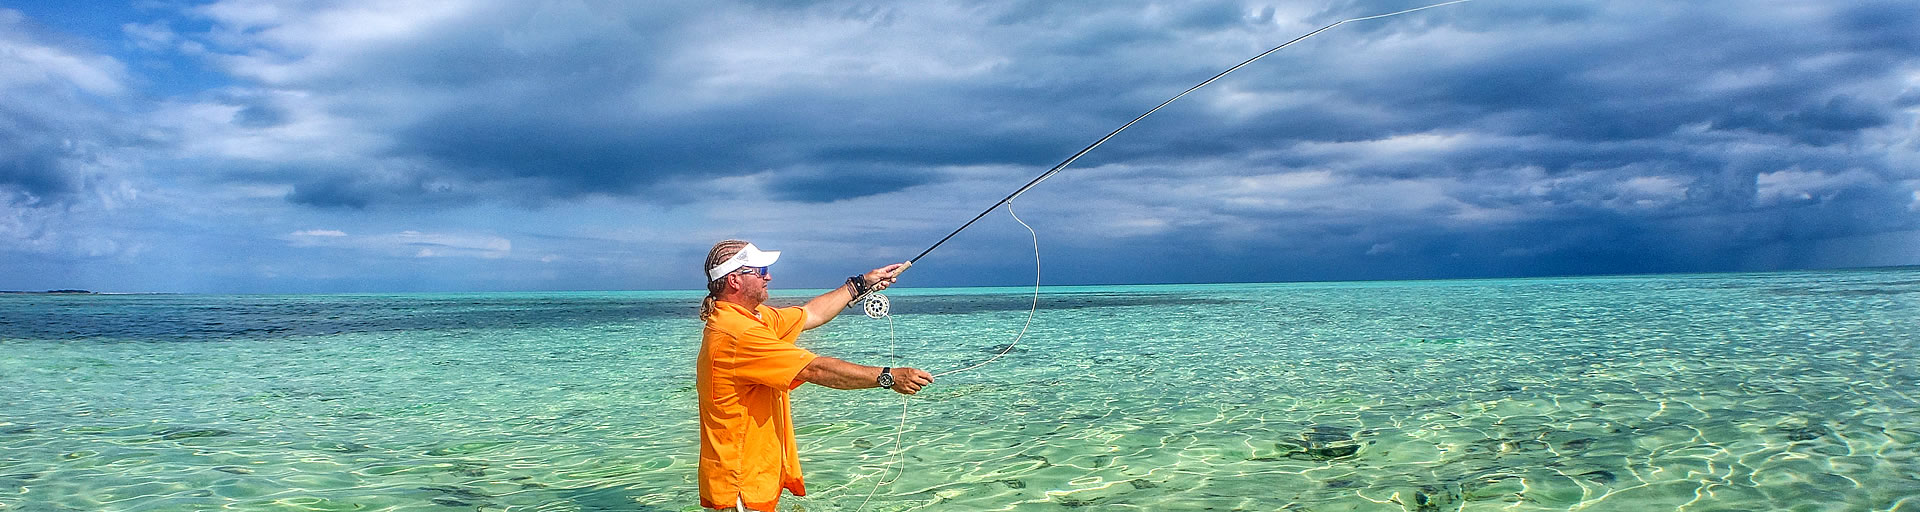 Fishing Adventures in Belize